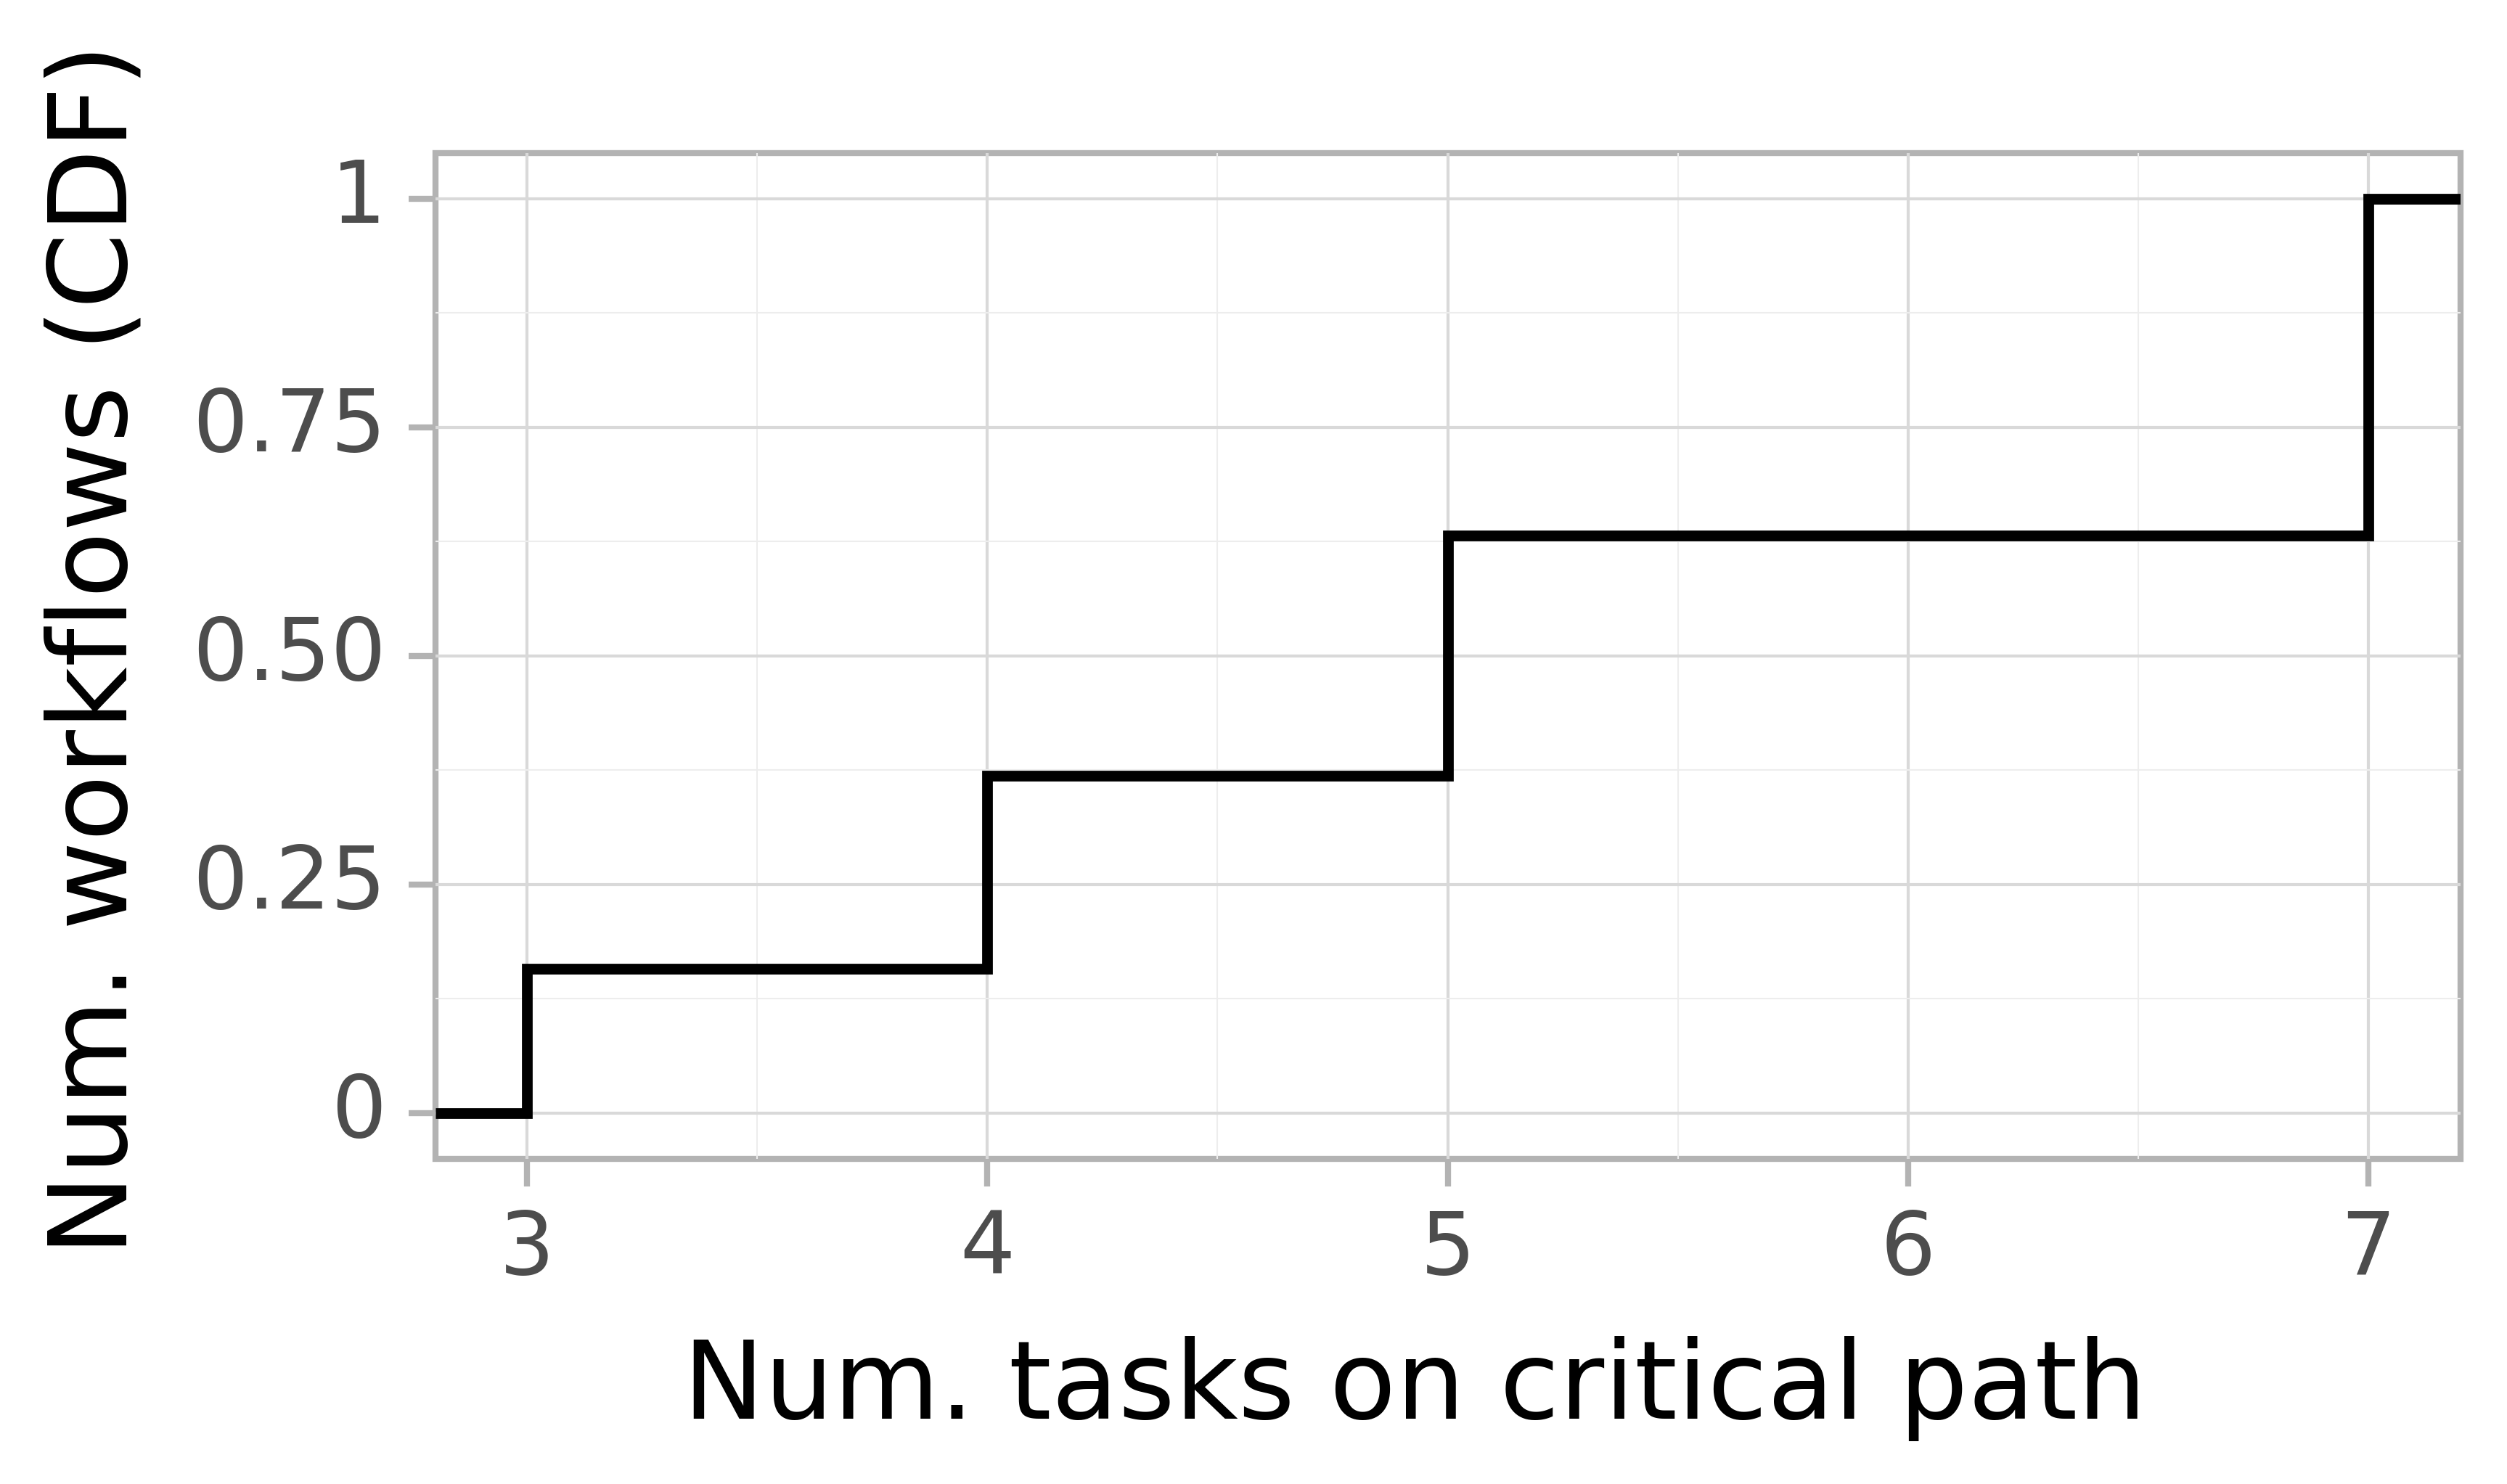 Job critical path task count graph for the Pegasus_P7 trace.